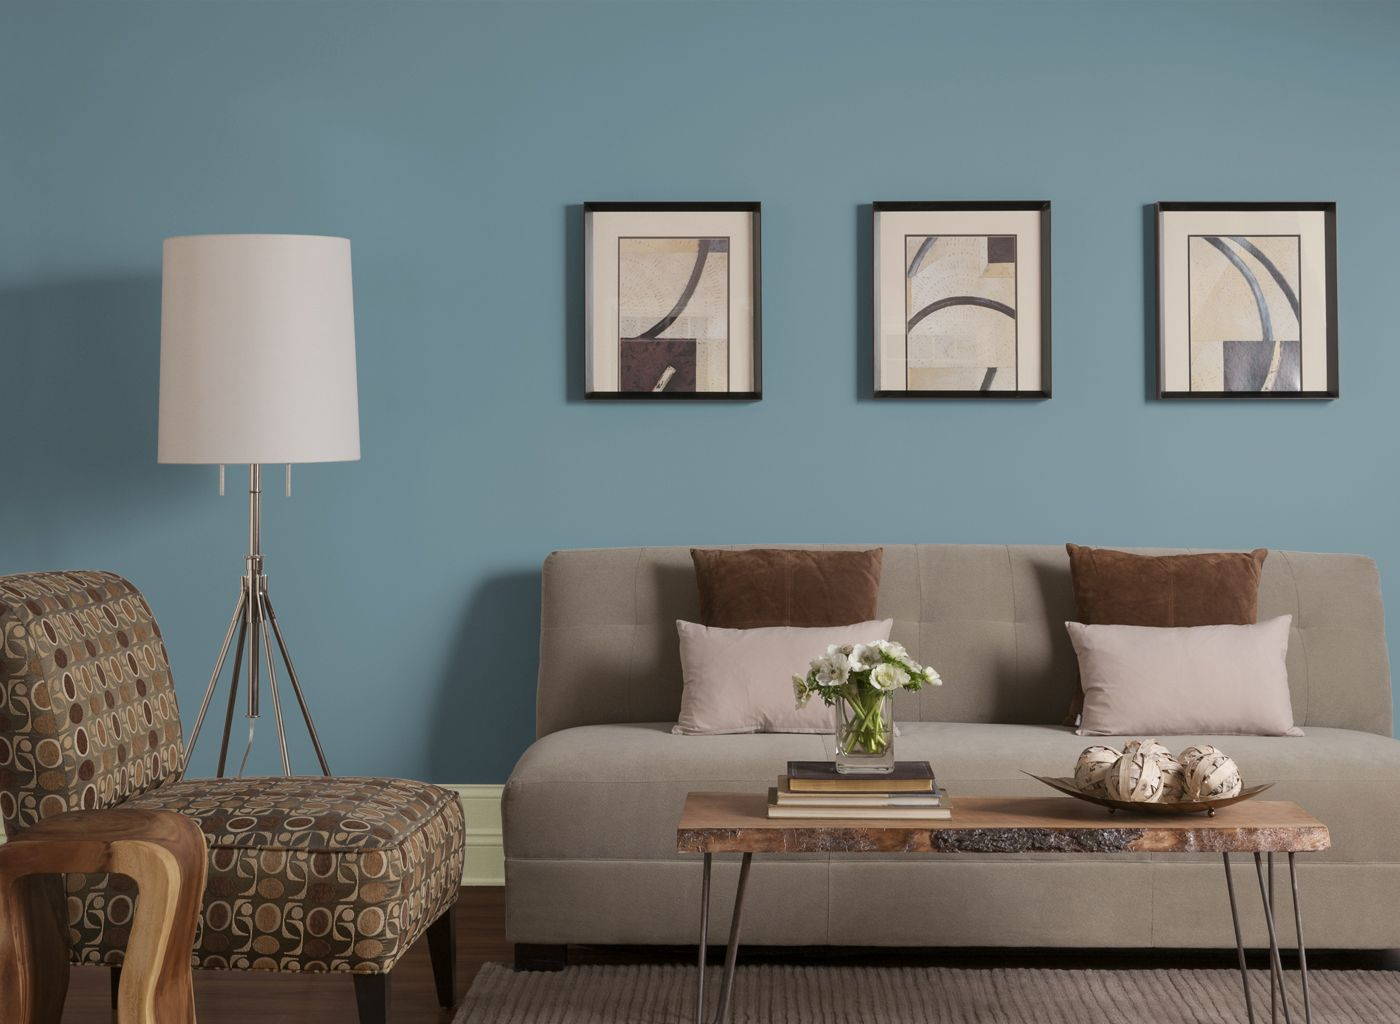 Paint Colors Turquoise Og Description For Rooms By Color Family Room Pinterest